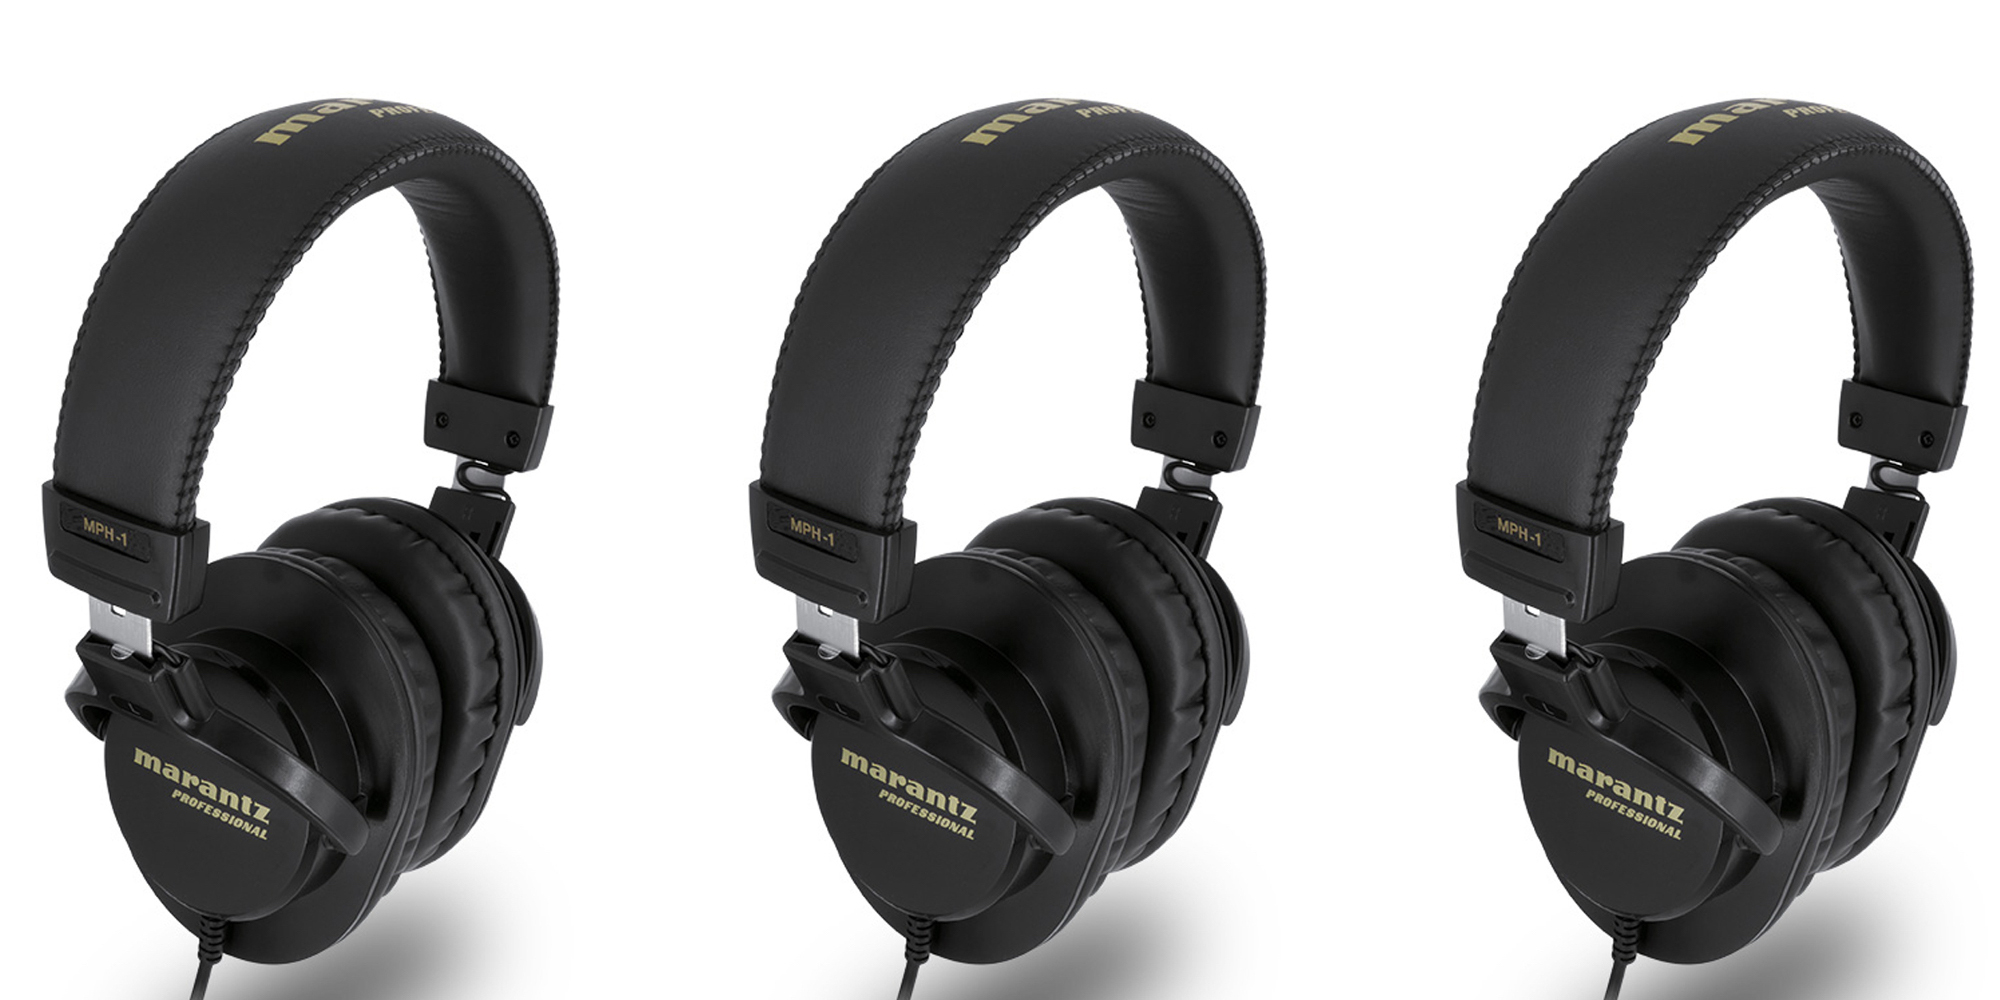 The Marantz Pro Studio Headphones get a massive 60% price drop: $30 (Today only, Reg. $70)